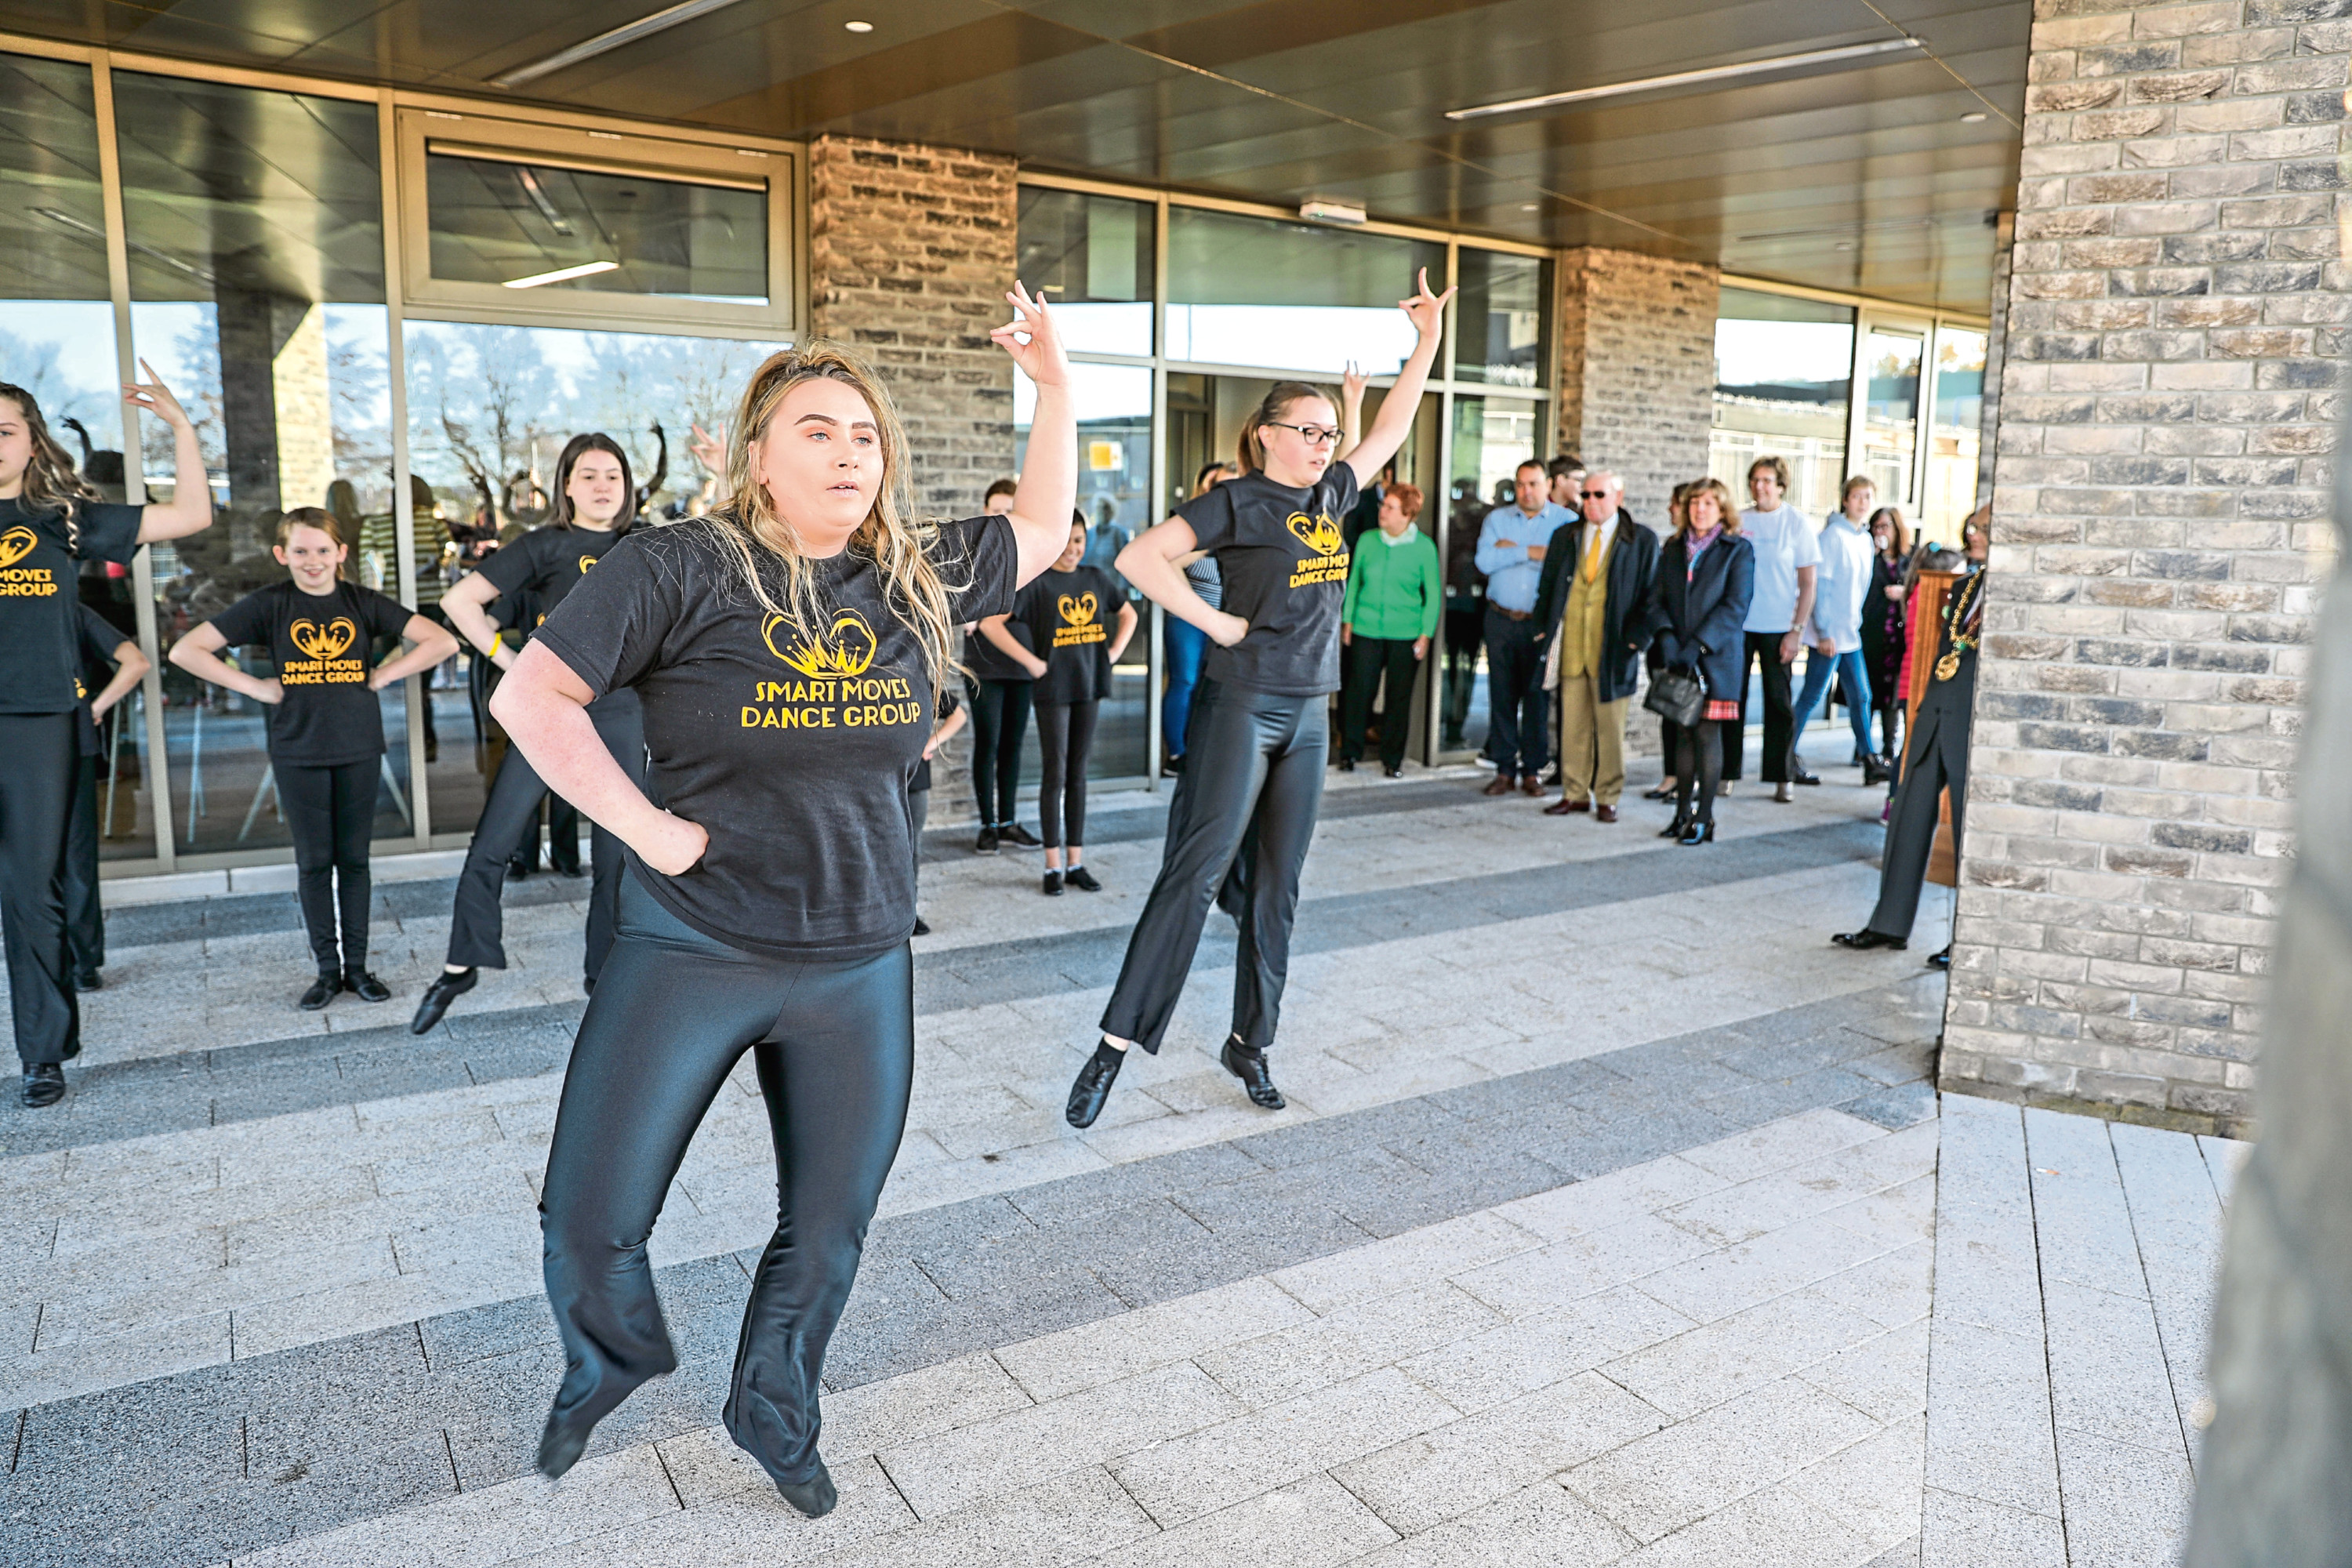 Smart Moves Dance Group perform for the opening of the new Menzieshill Community Hub.